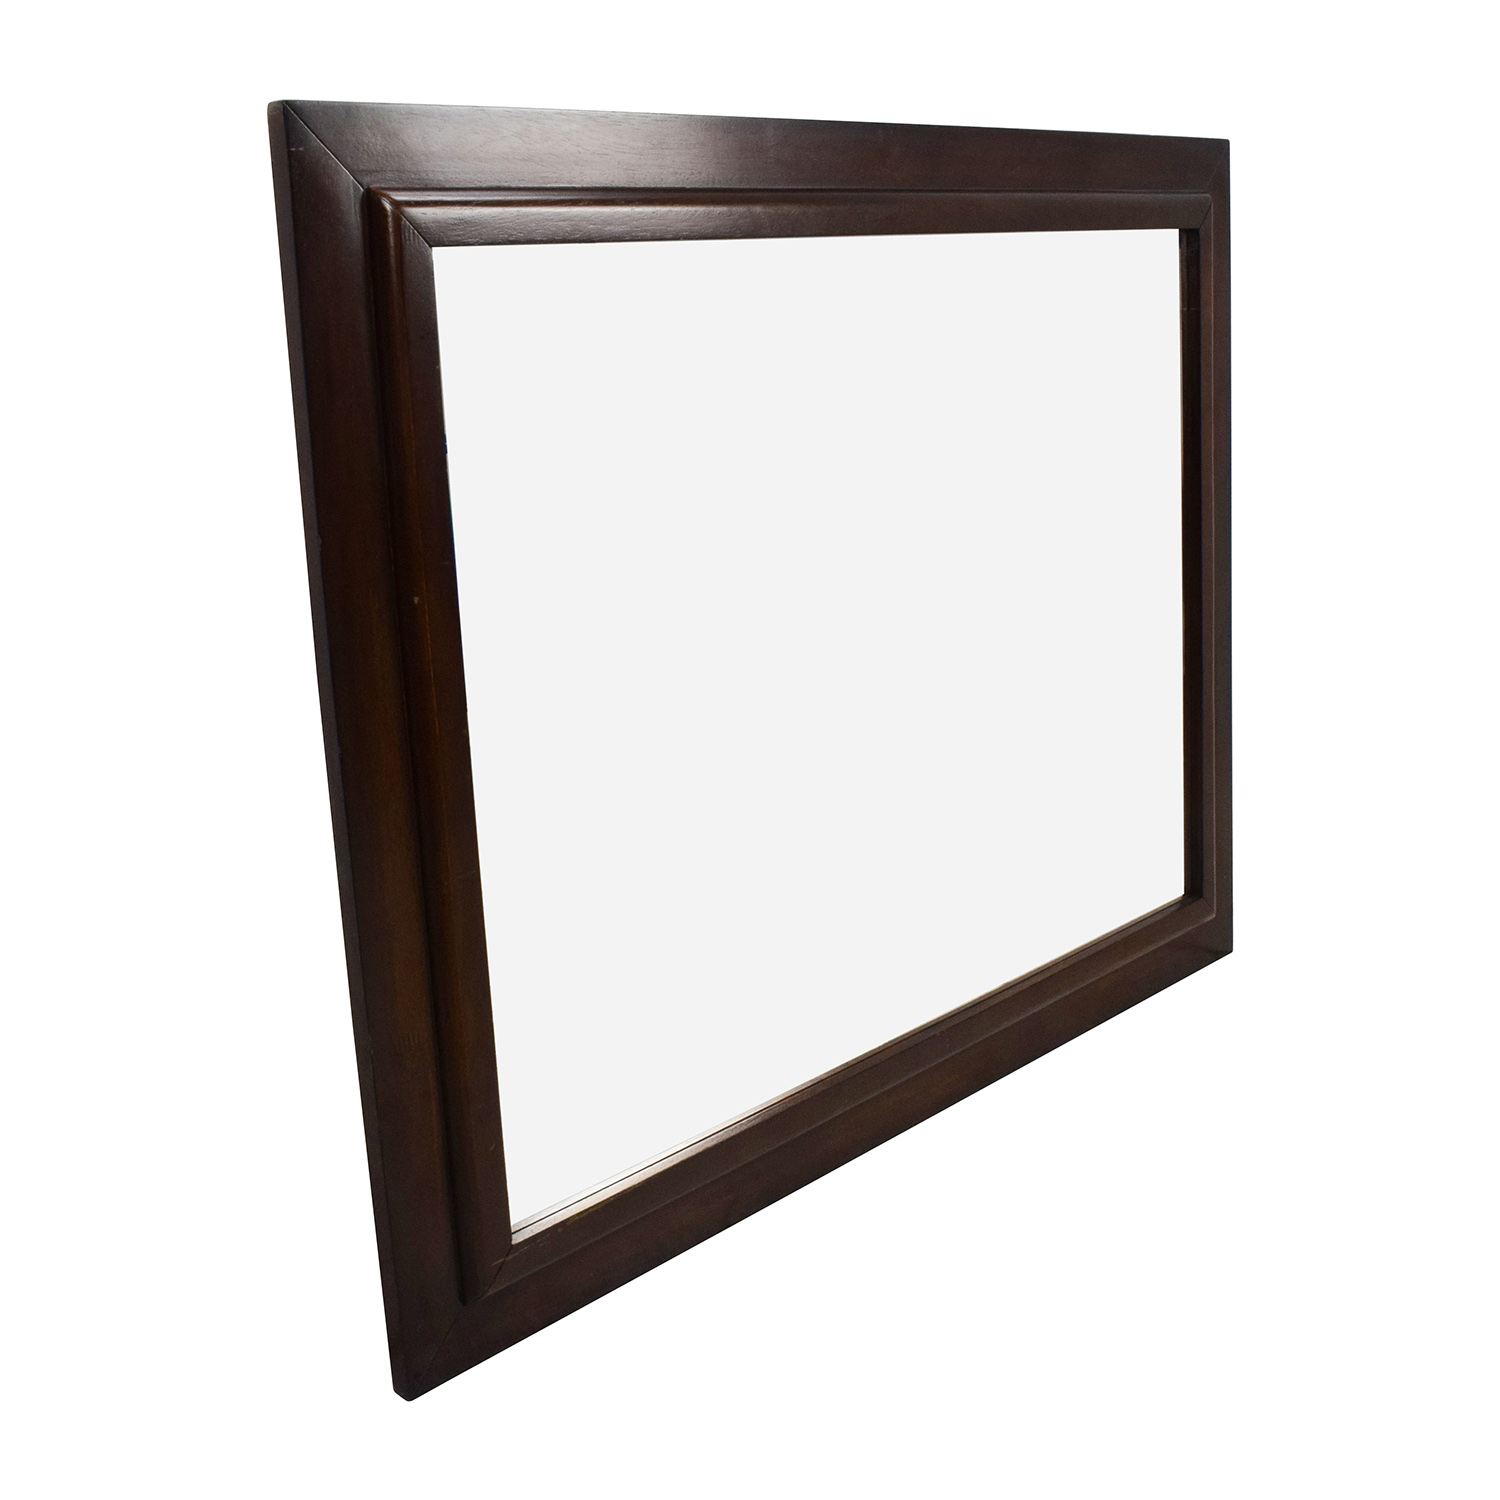 80 off large square wood framed wall mirror decor